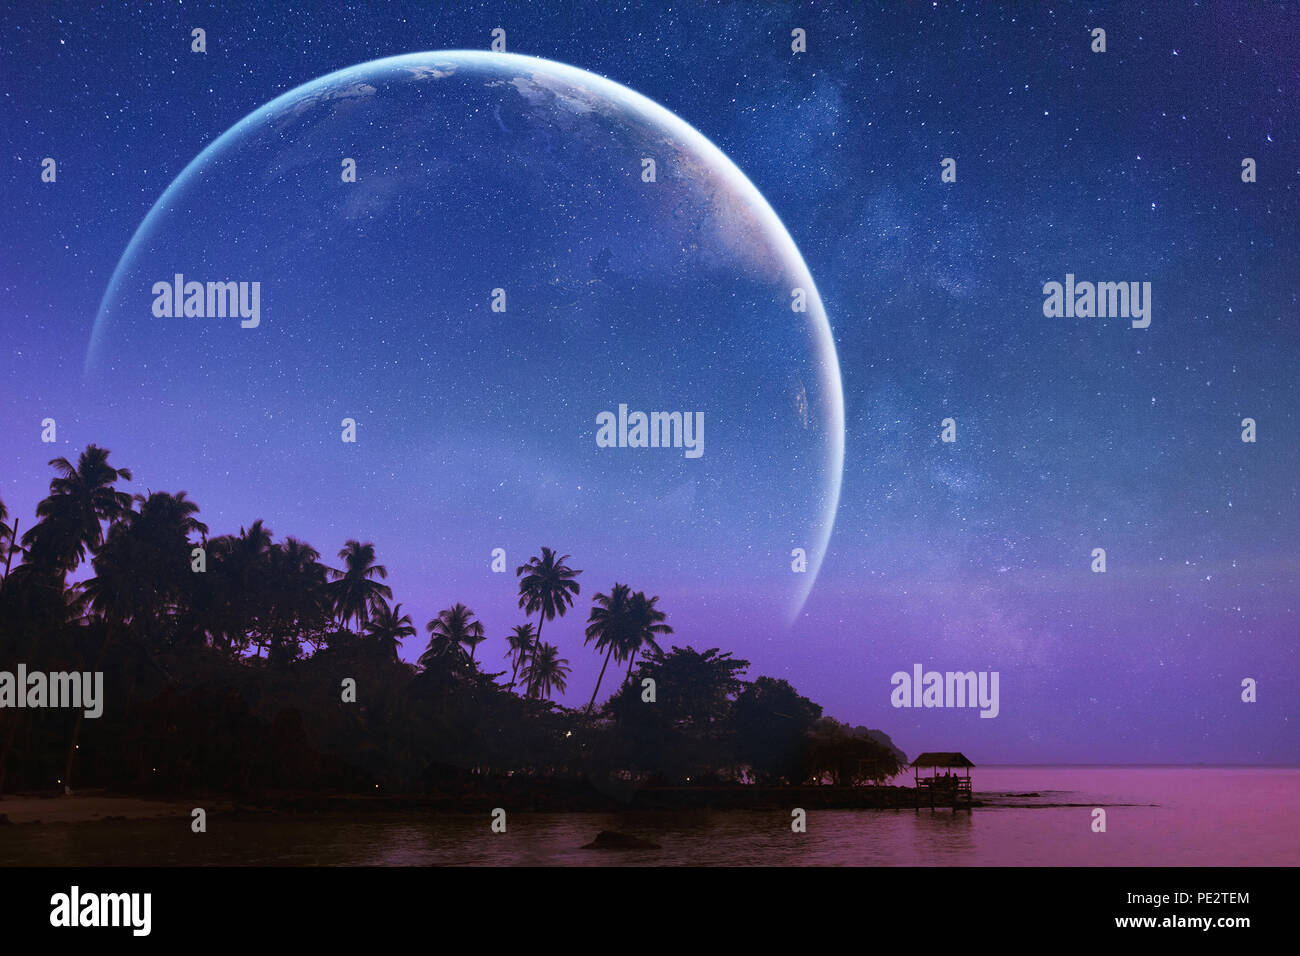 fantasy landscape, imaginary world, view of tropical wonderland with starry sky and big planet, dreamworld - Stock Image